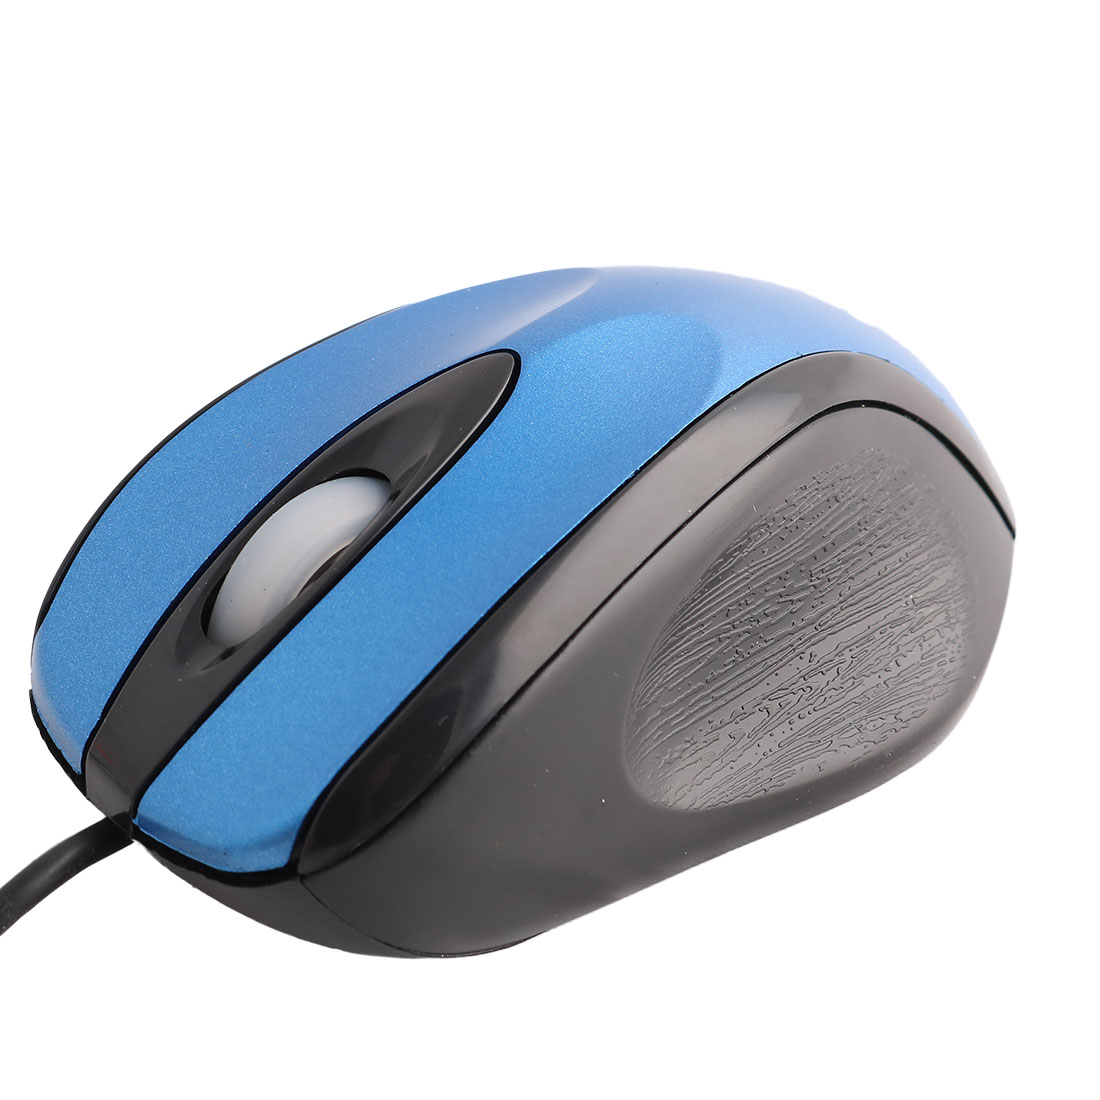 Unique Bargains Blue 800DPI USB Optical  Wired Gaming Mouse for Notebook Laptop PC